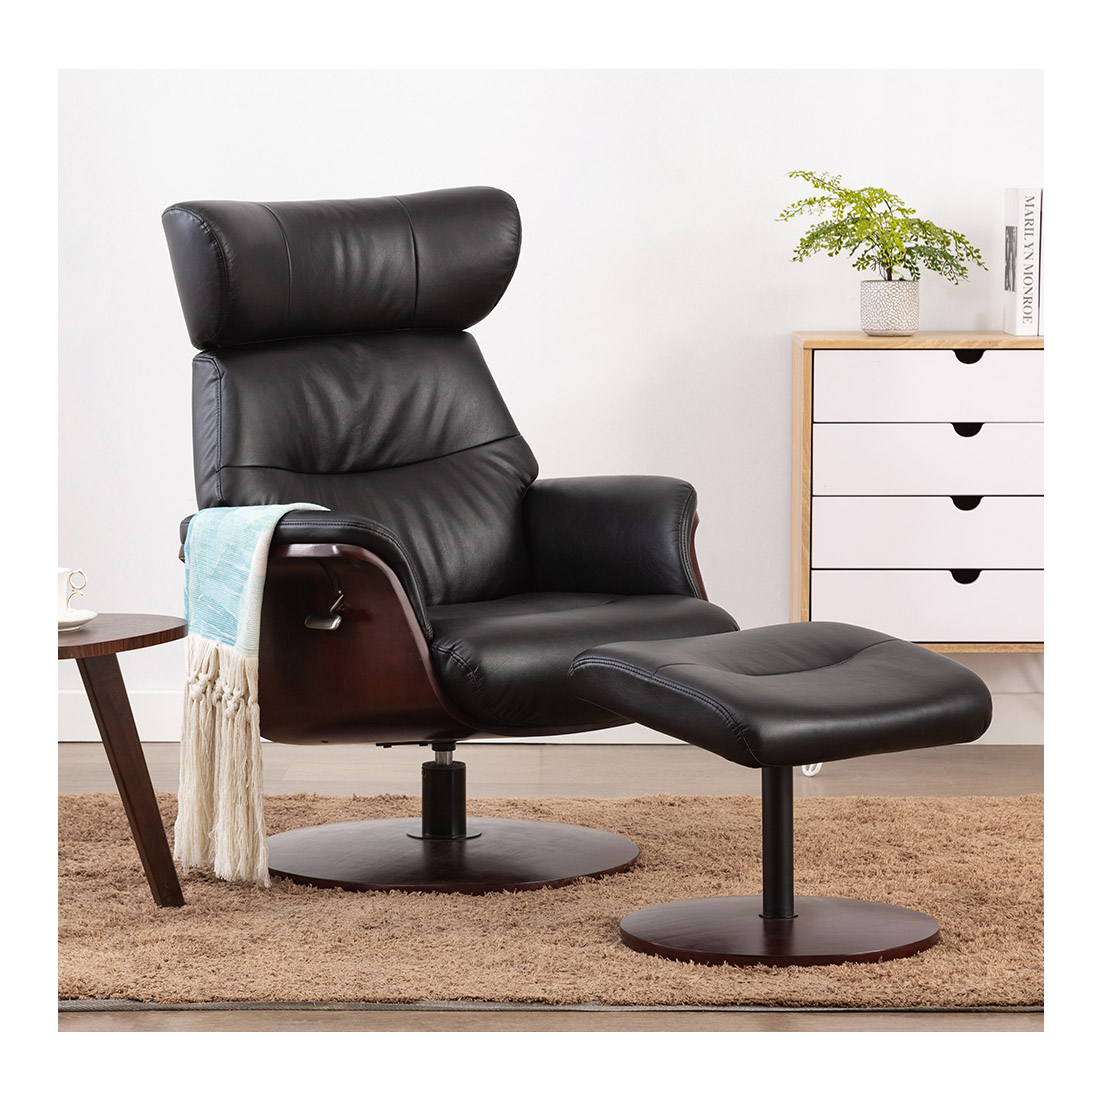 Stockholm Leather Recliner & Ottoman - Black